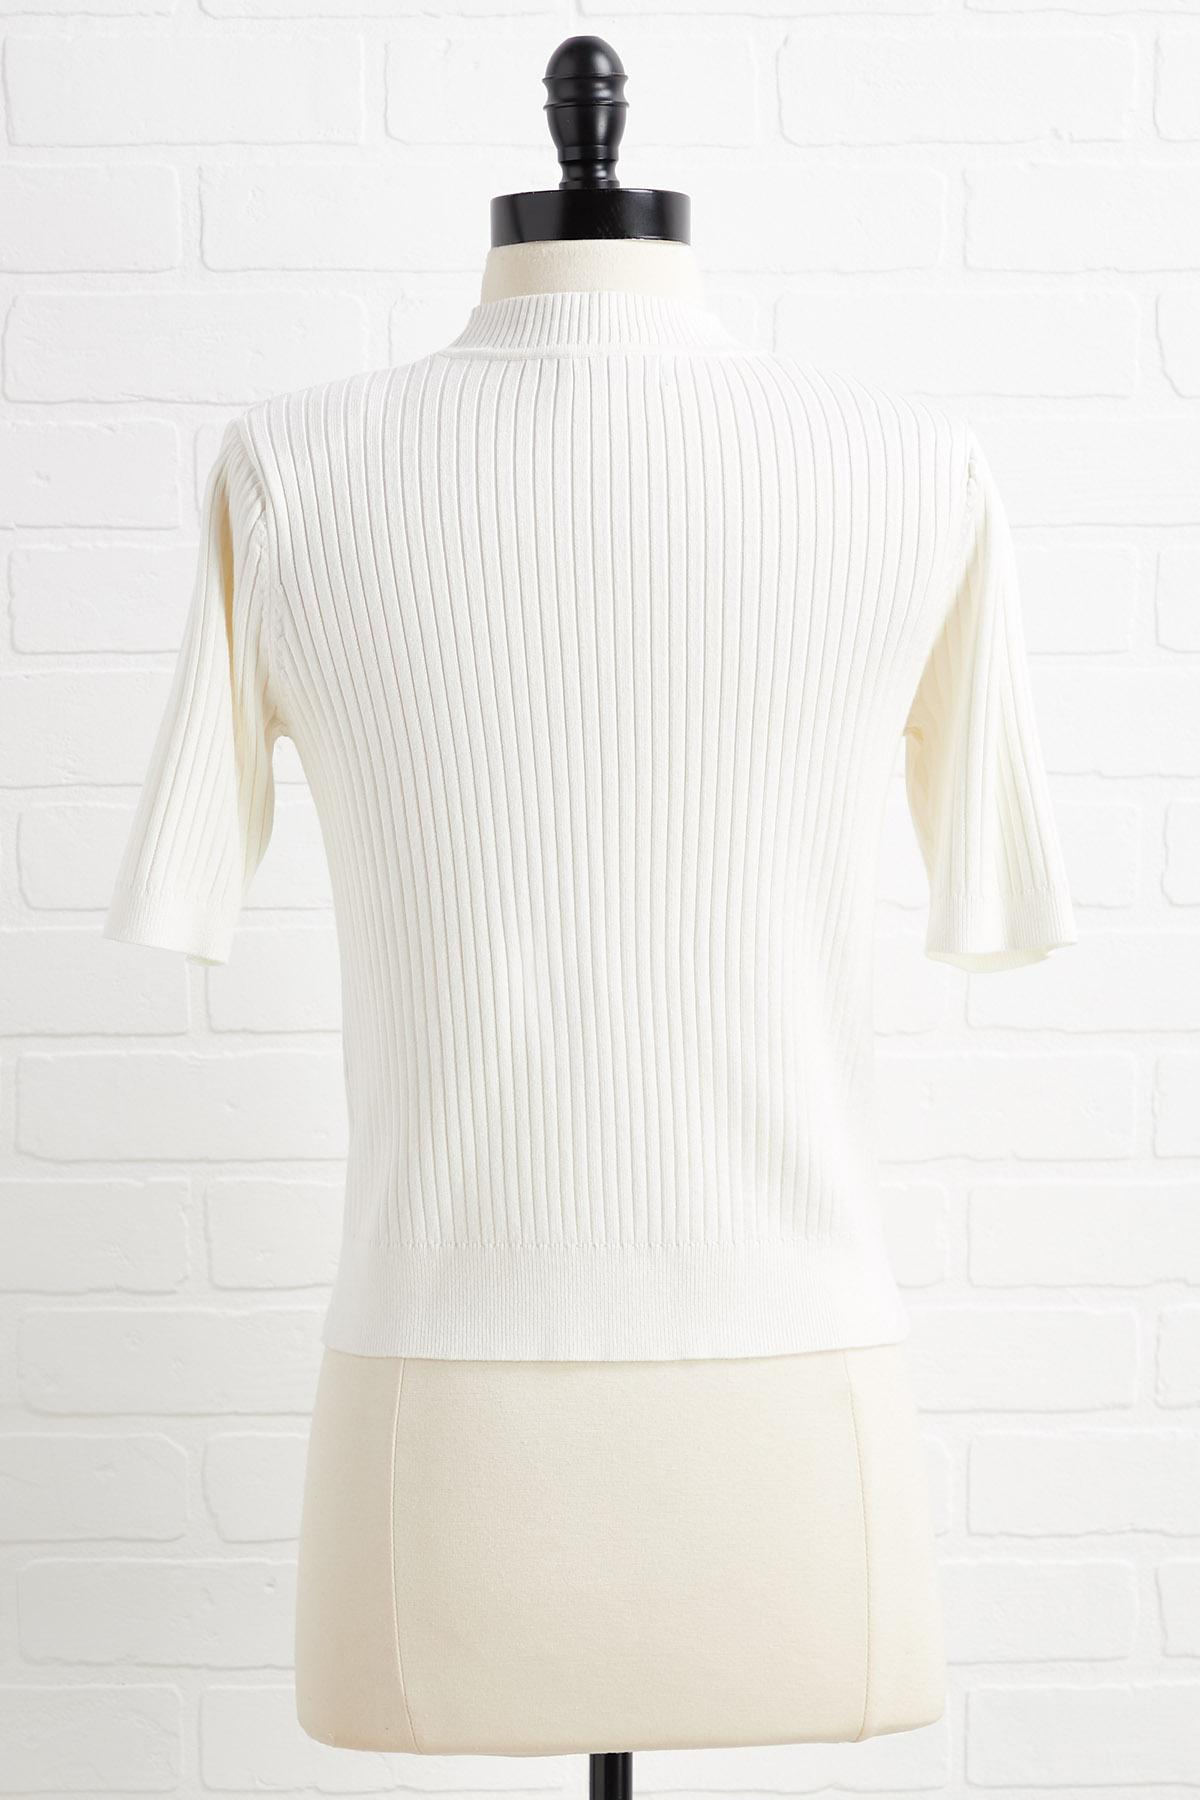 Whipped Cream Sweater